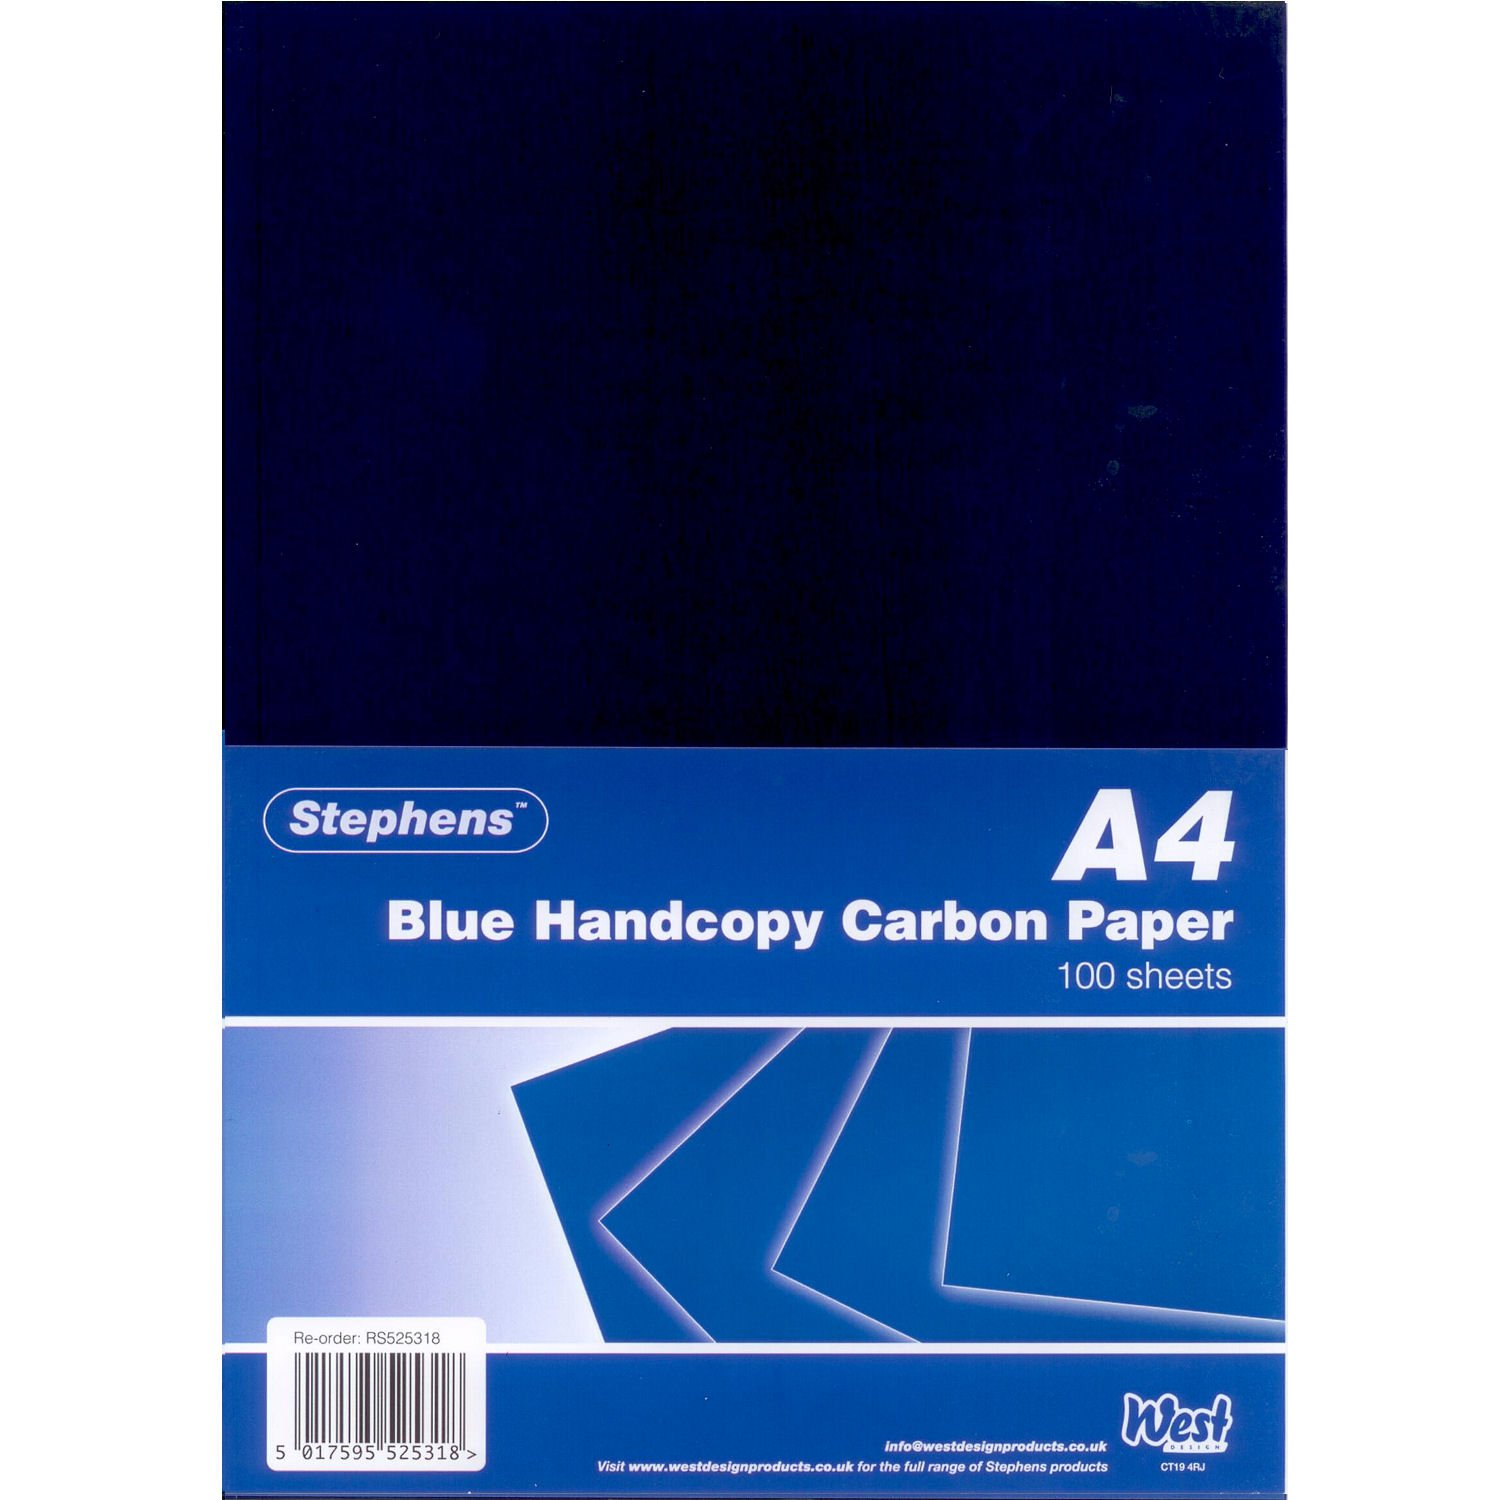 Stephens Handcopy Carbon Paper Blue A4 (100 Sheets) RS525318